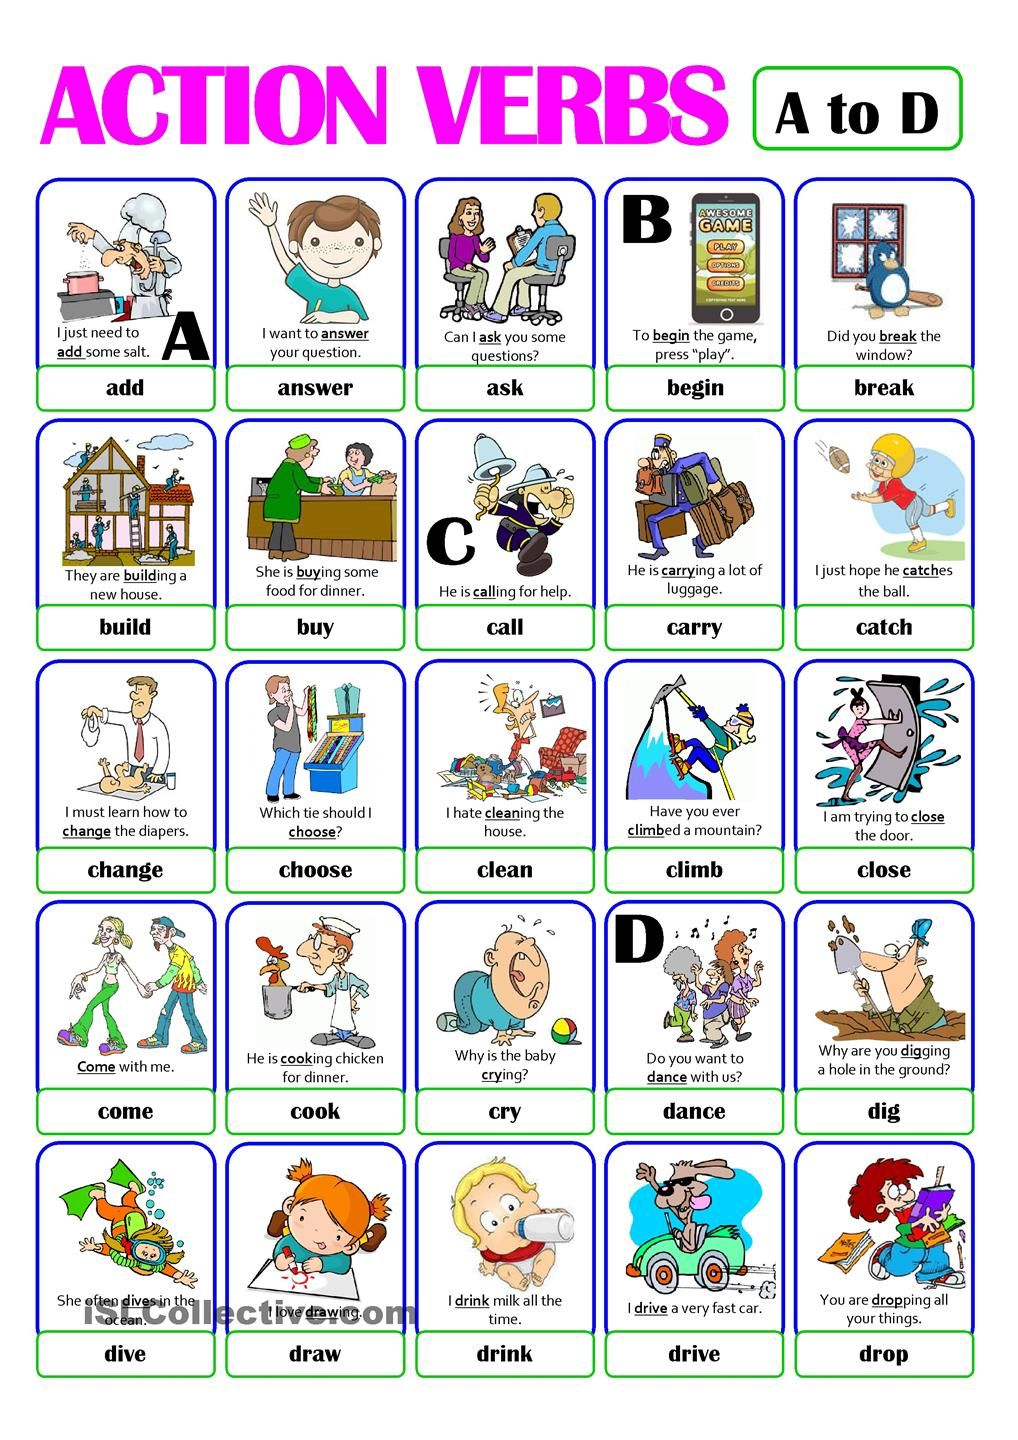 PICTIONARY - ACTION VERB SET (1) - from A to D | Vocabulary | Pinterest